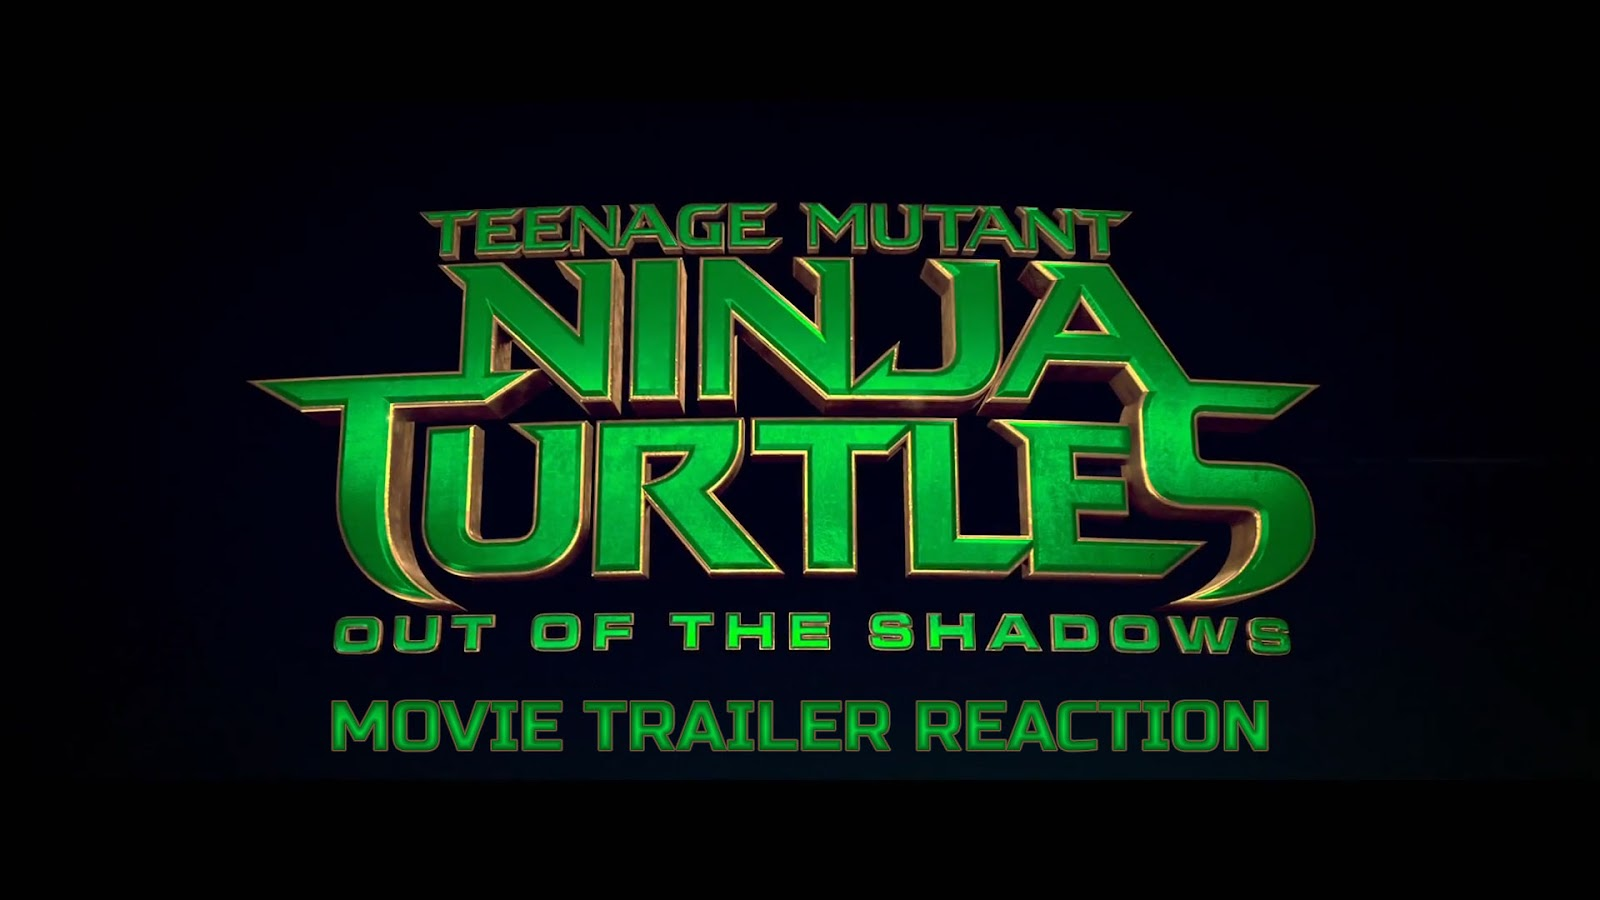 reaction to trailer for Teenage Mutant Ninja Turtles: Out of the Shadows